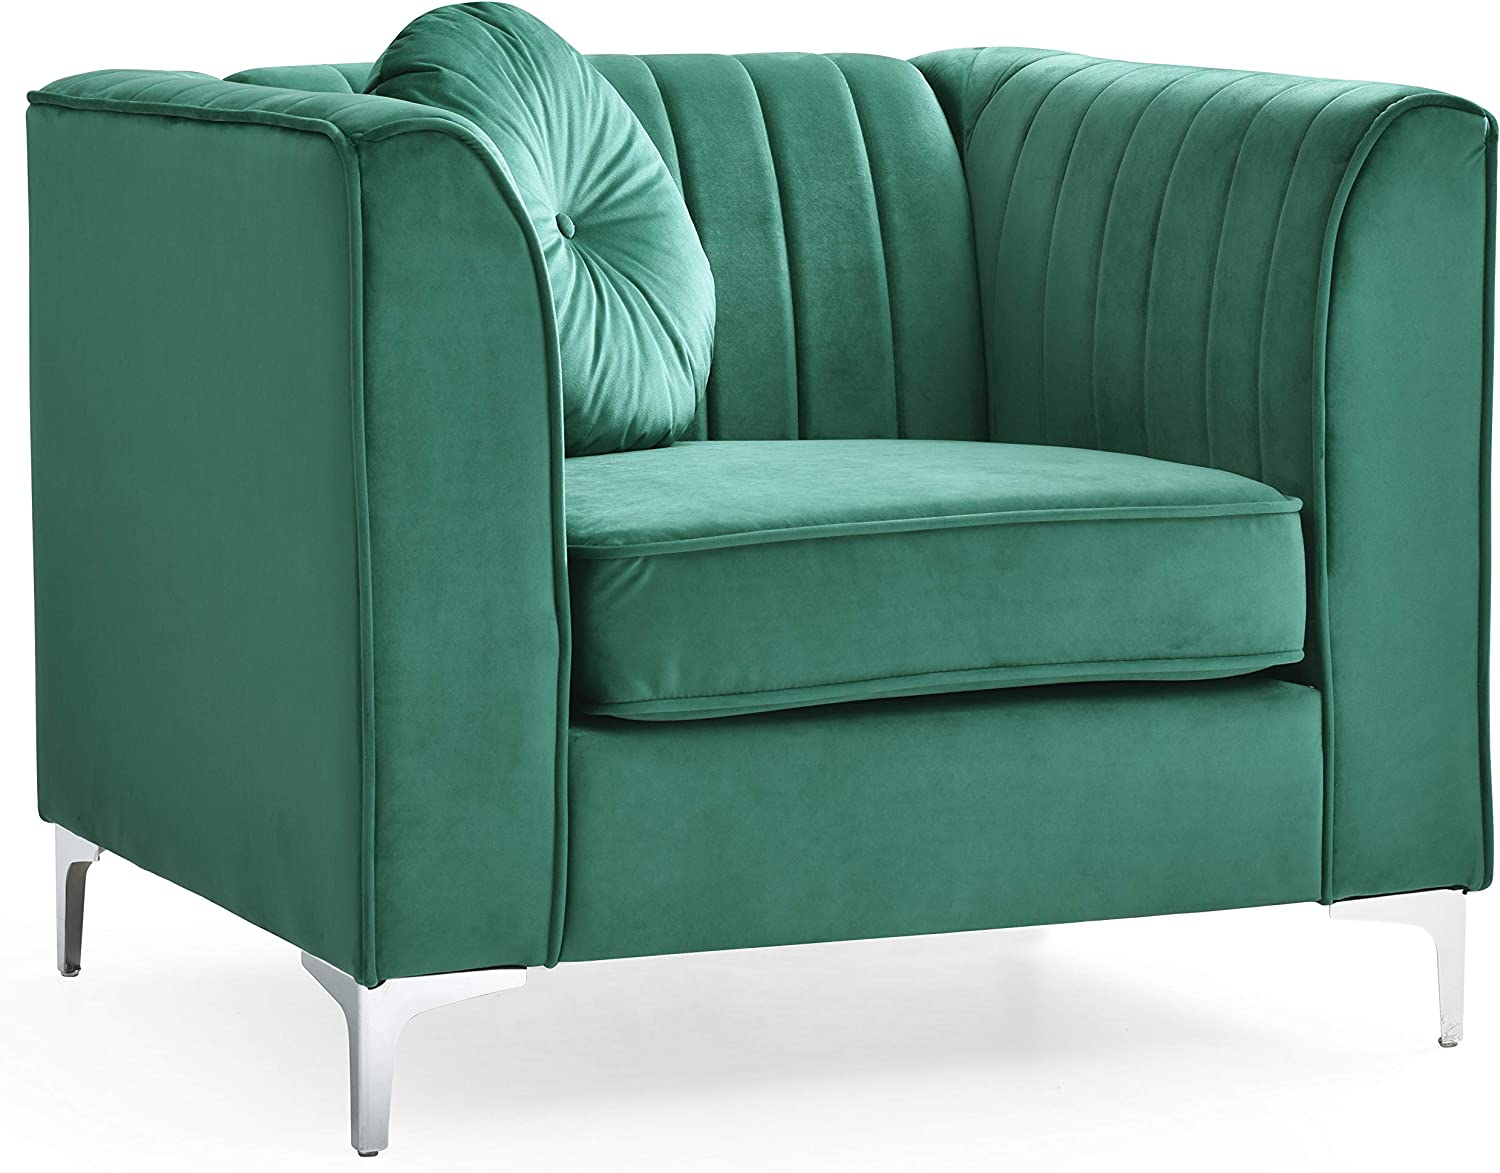 Glory Furniture Delray Chair, Green. Living Room Furniture, 1 Seater